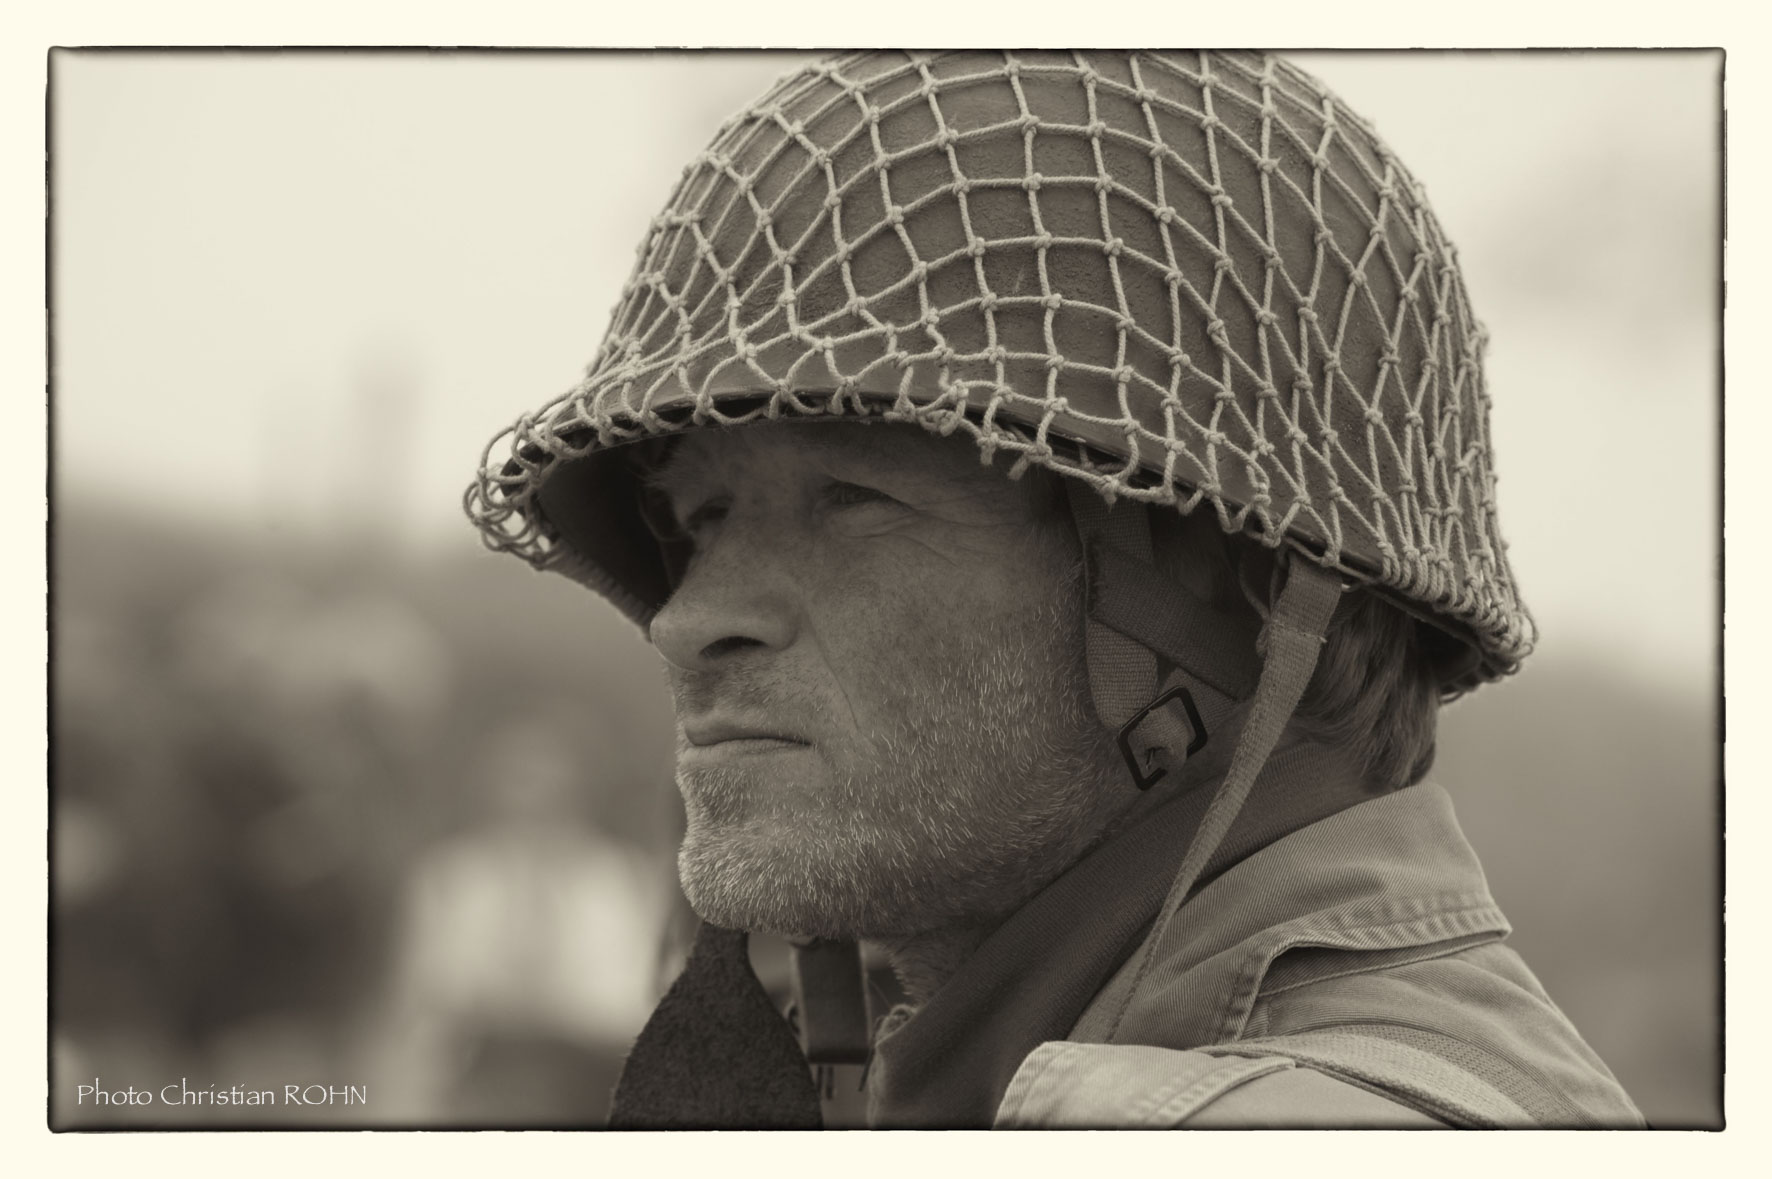 Photographe événementiel Christian ROHN : D-DAY Normandie